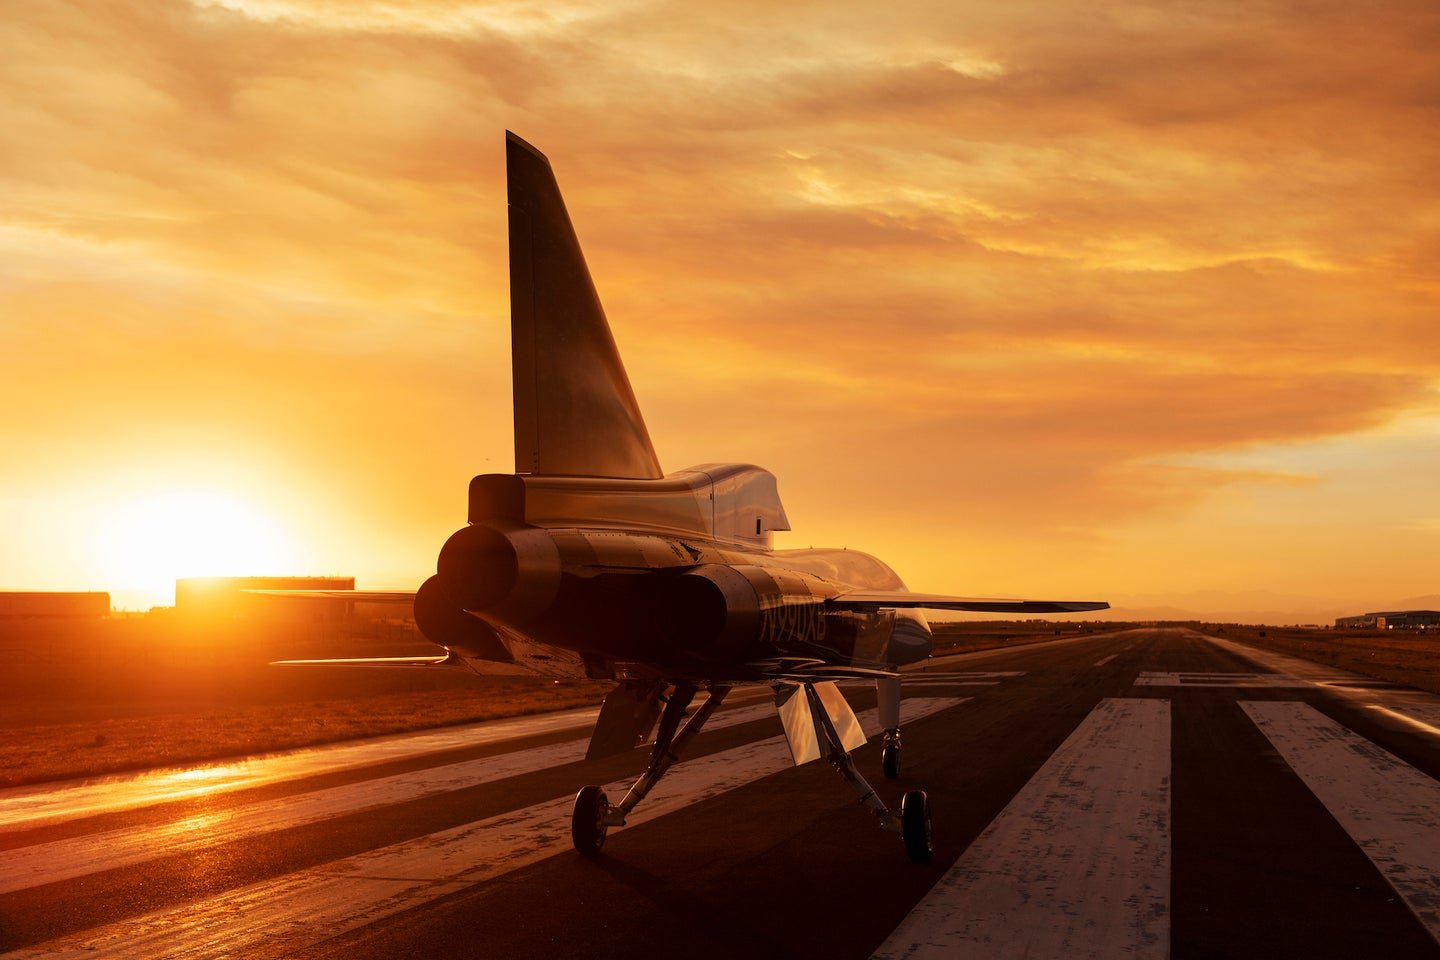 This test plane could be a big step towards supersonic commercial flights